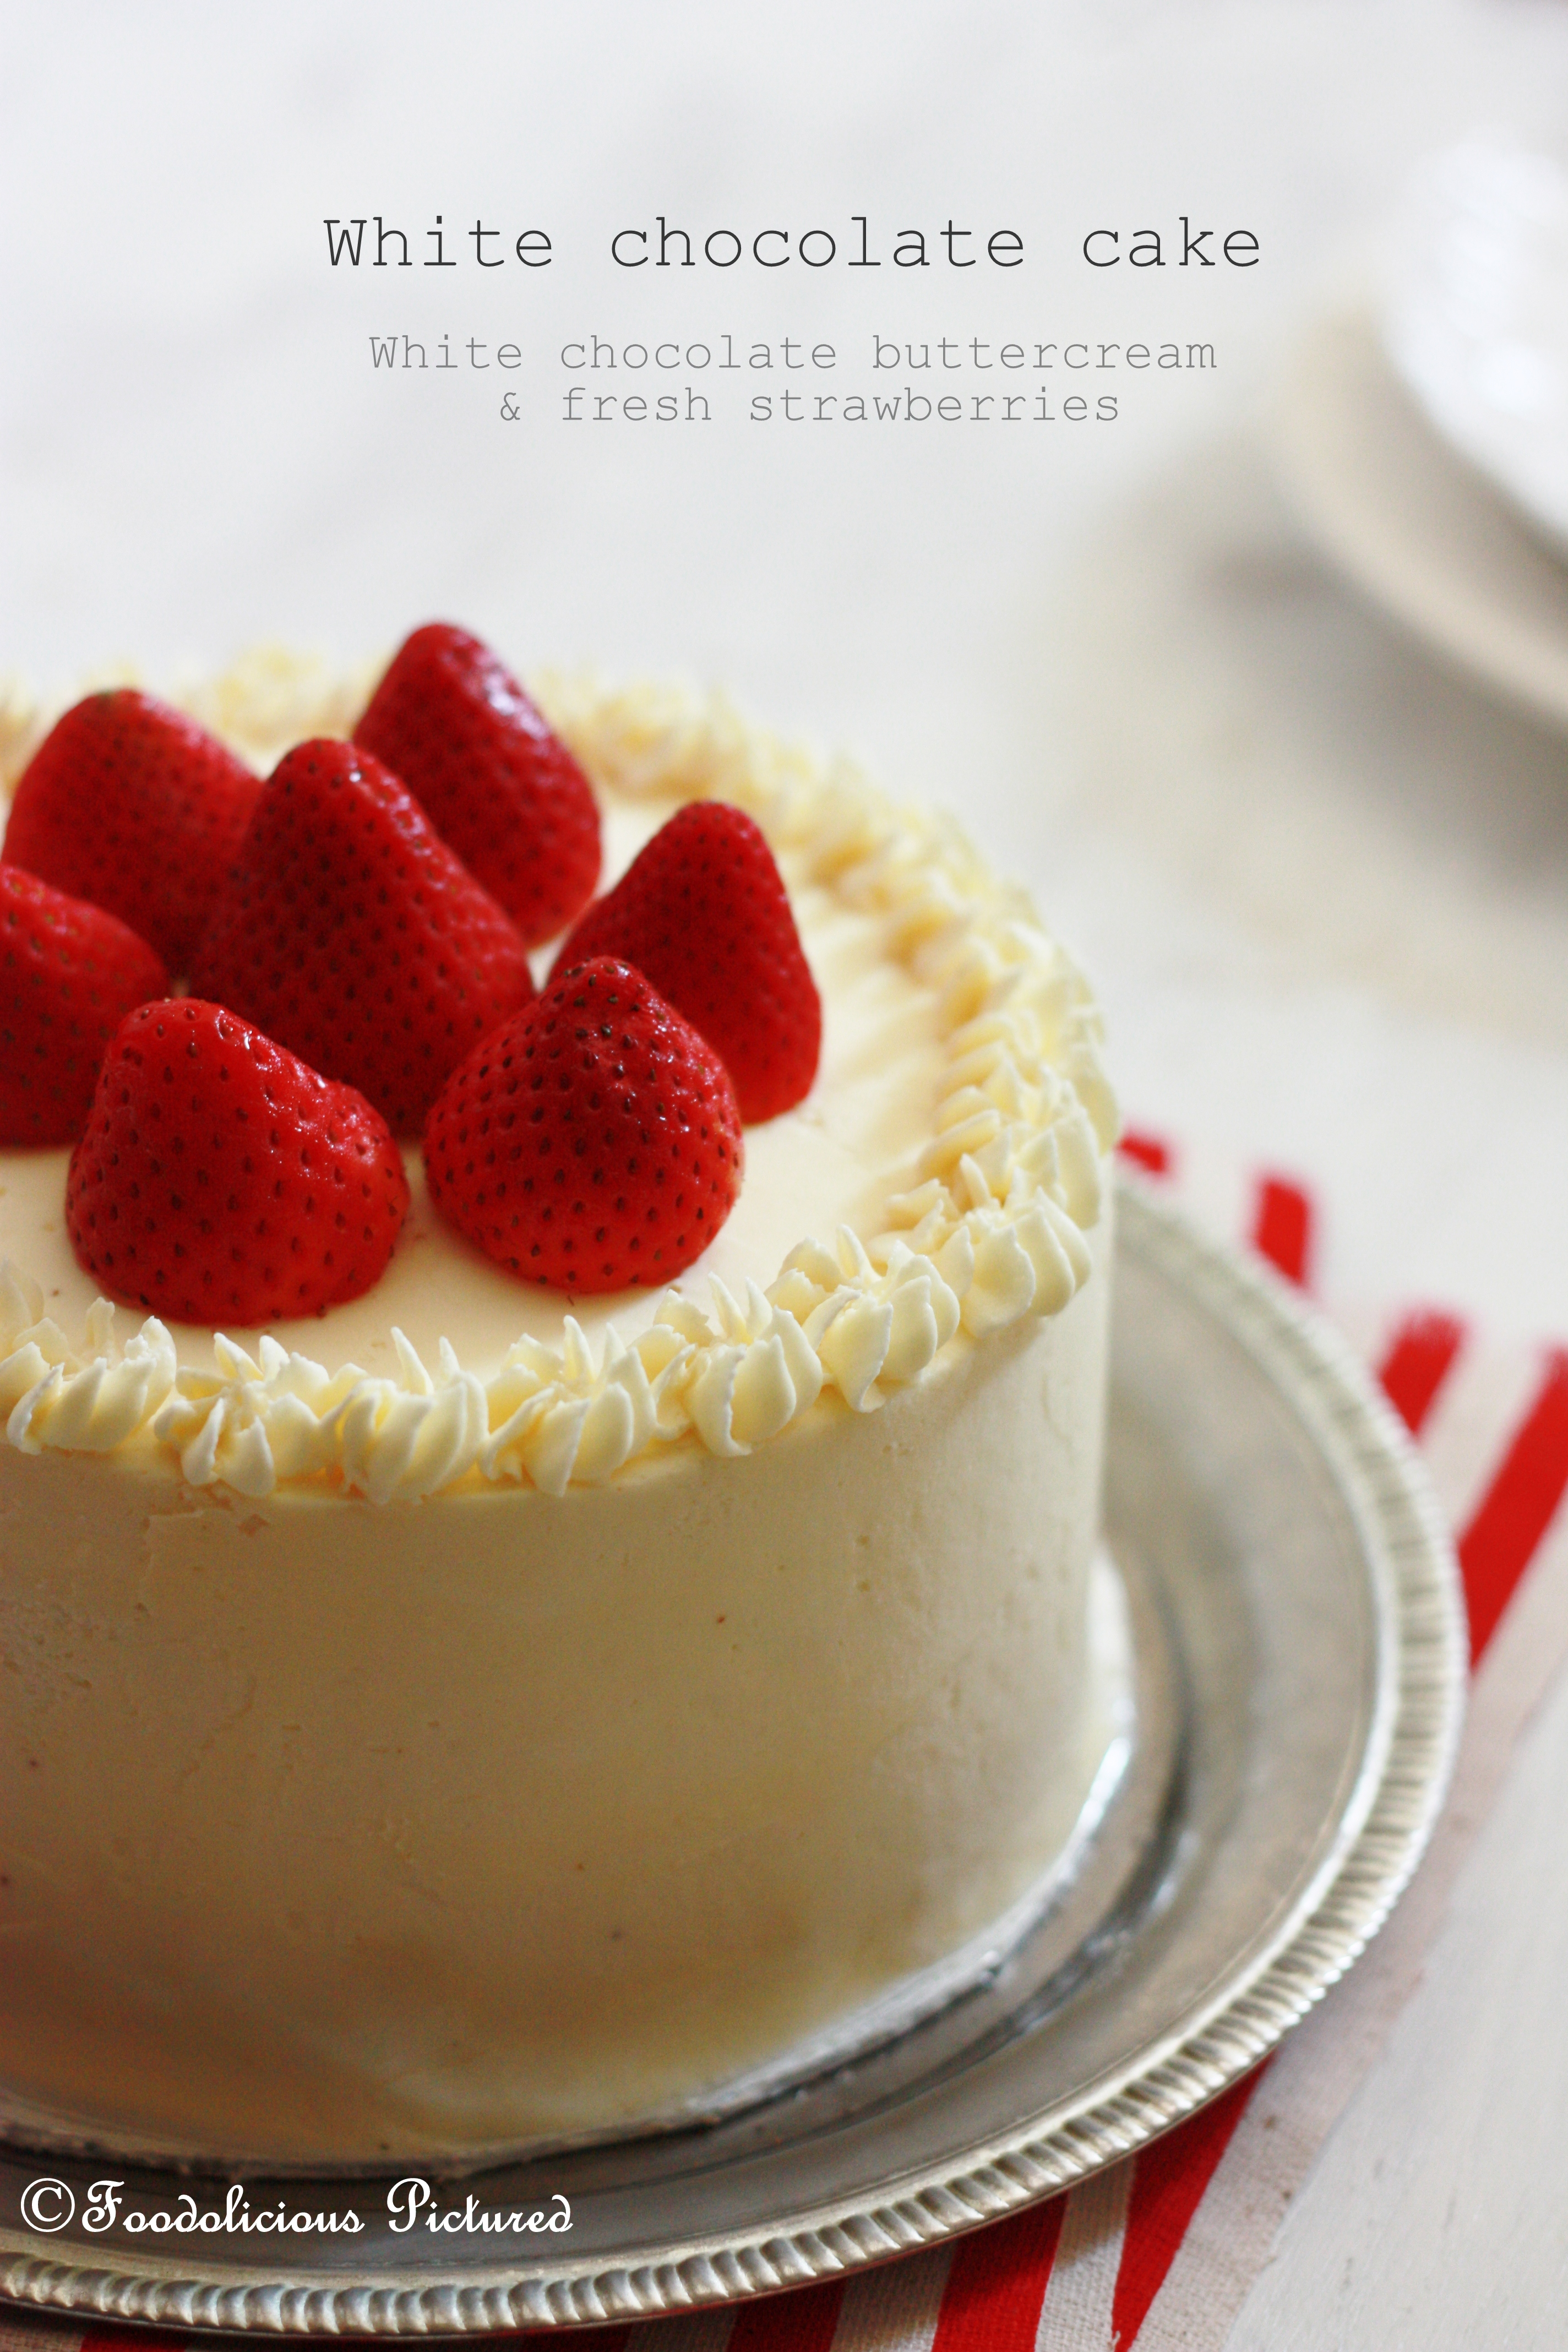 White chocolate cake with white chocolate butter cream